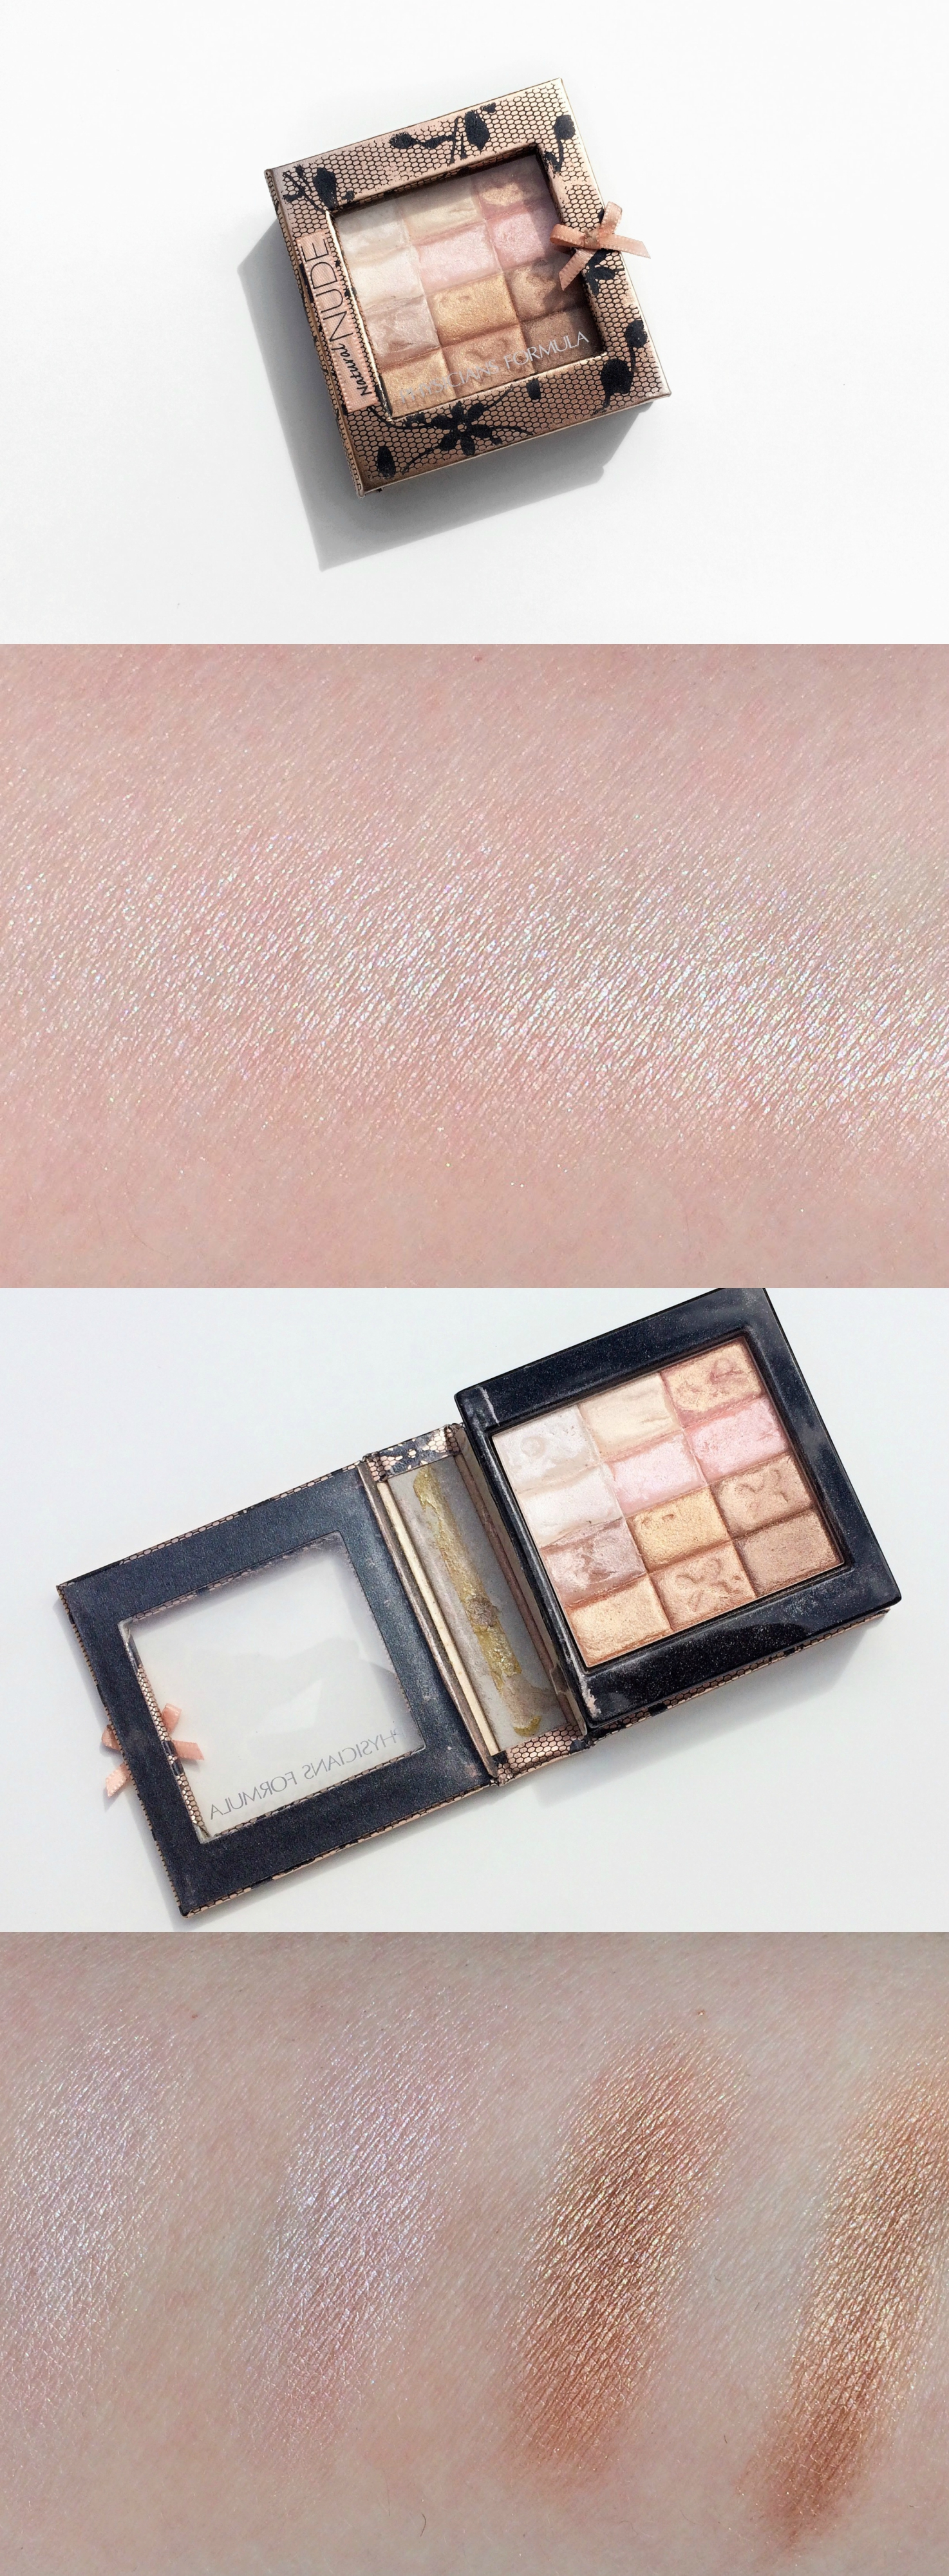 Physicians Formula Natural Nude Shimmer Strips Palette Review